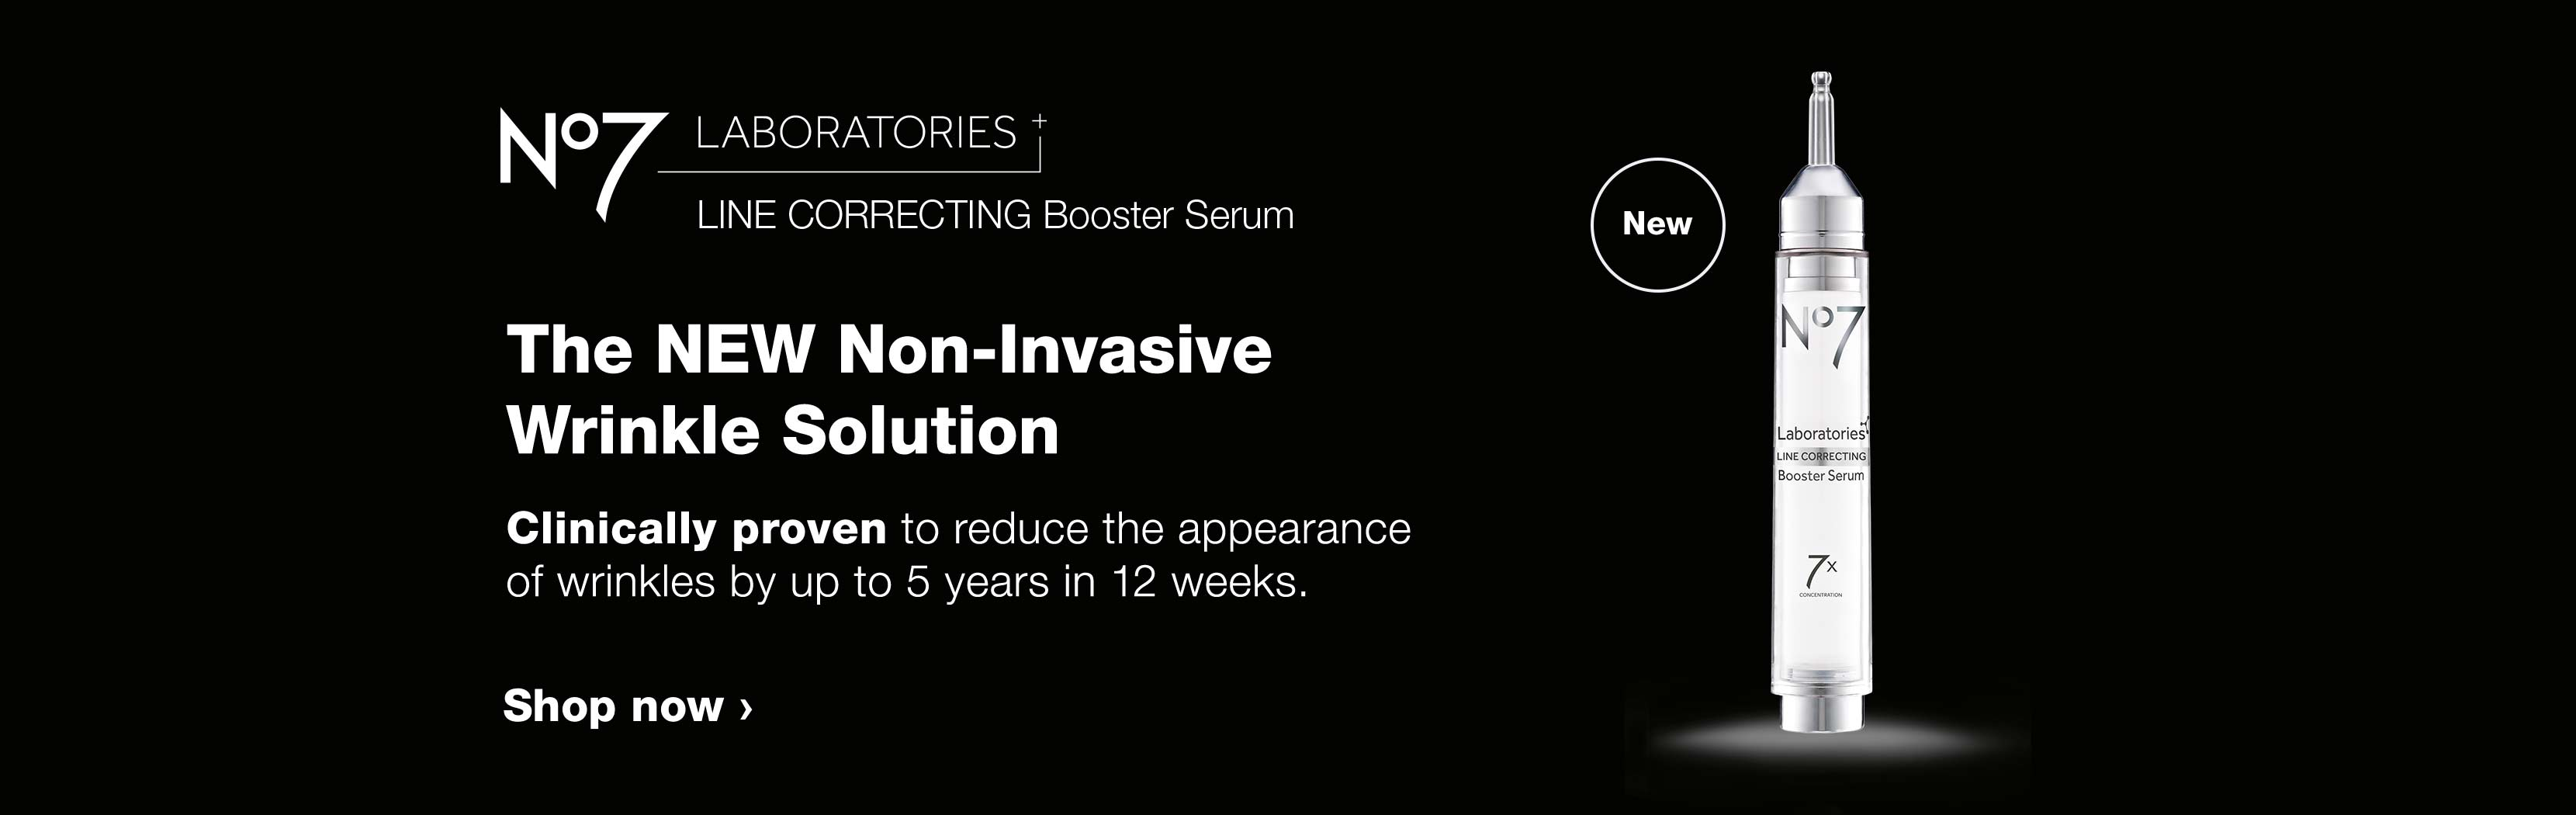 NEW - No7 LABORATORIES LINE CORRECTING Booster Serum. The NEW Non-Invasive Wrinkle Solution. Clinically proven to reduce the appearance of wrinkles by up to 5 years in 12 weeks. Shop now.